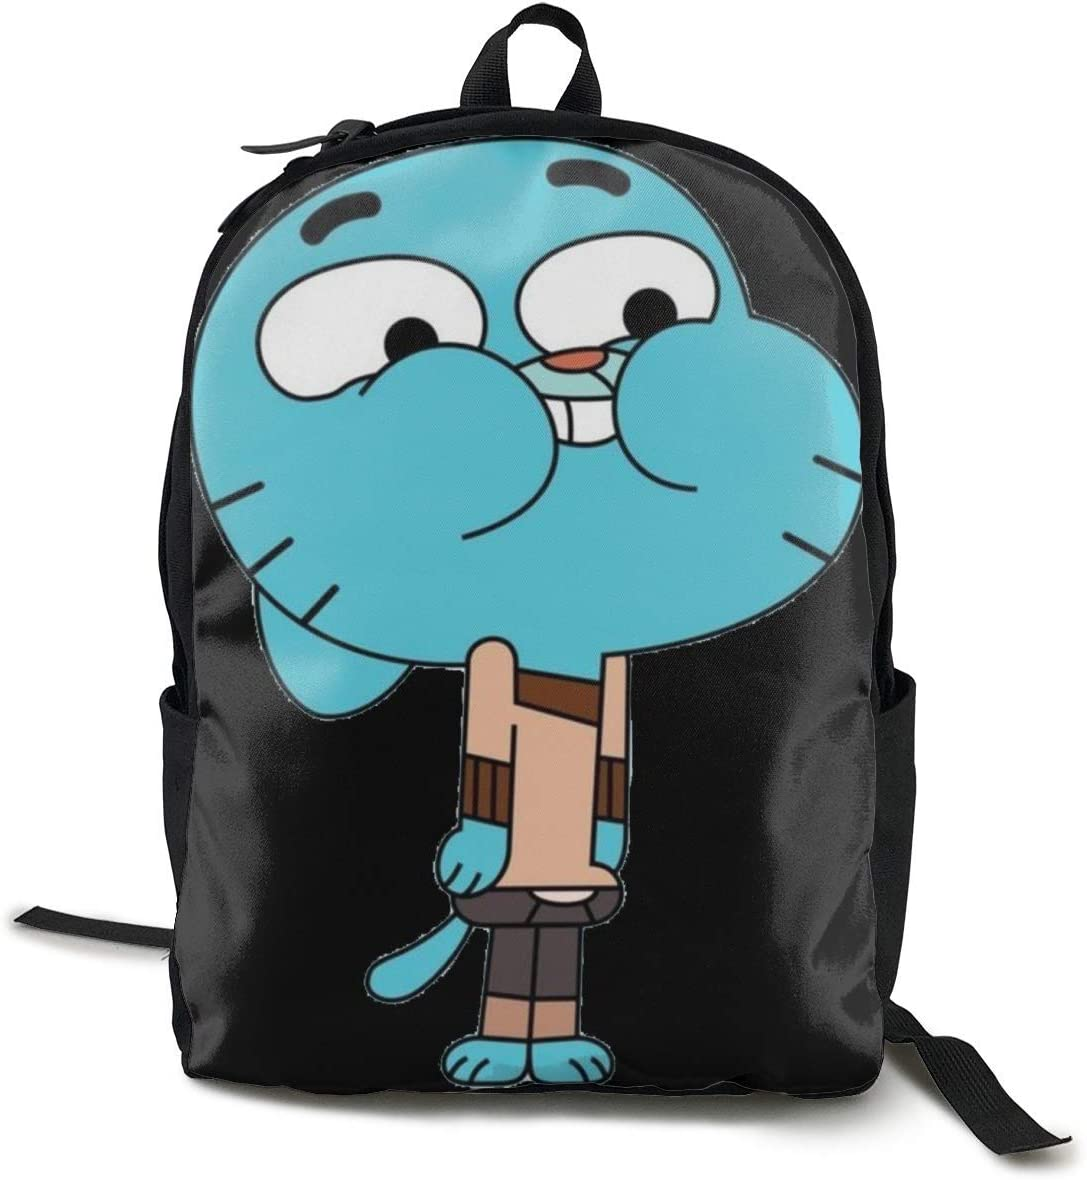 The Amazing World of Gumball Lightweight Teenager Backpack Black School Travel Shoulder Book Bag Daypack Sac /à Dos One Size